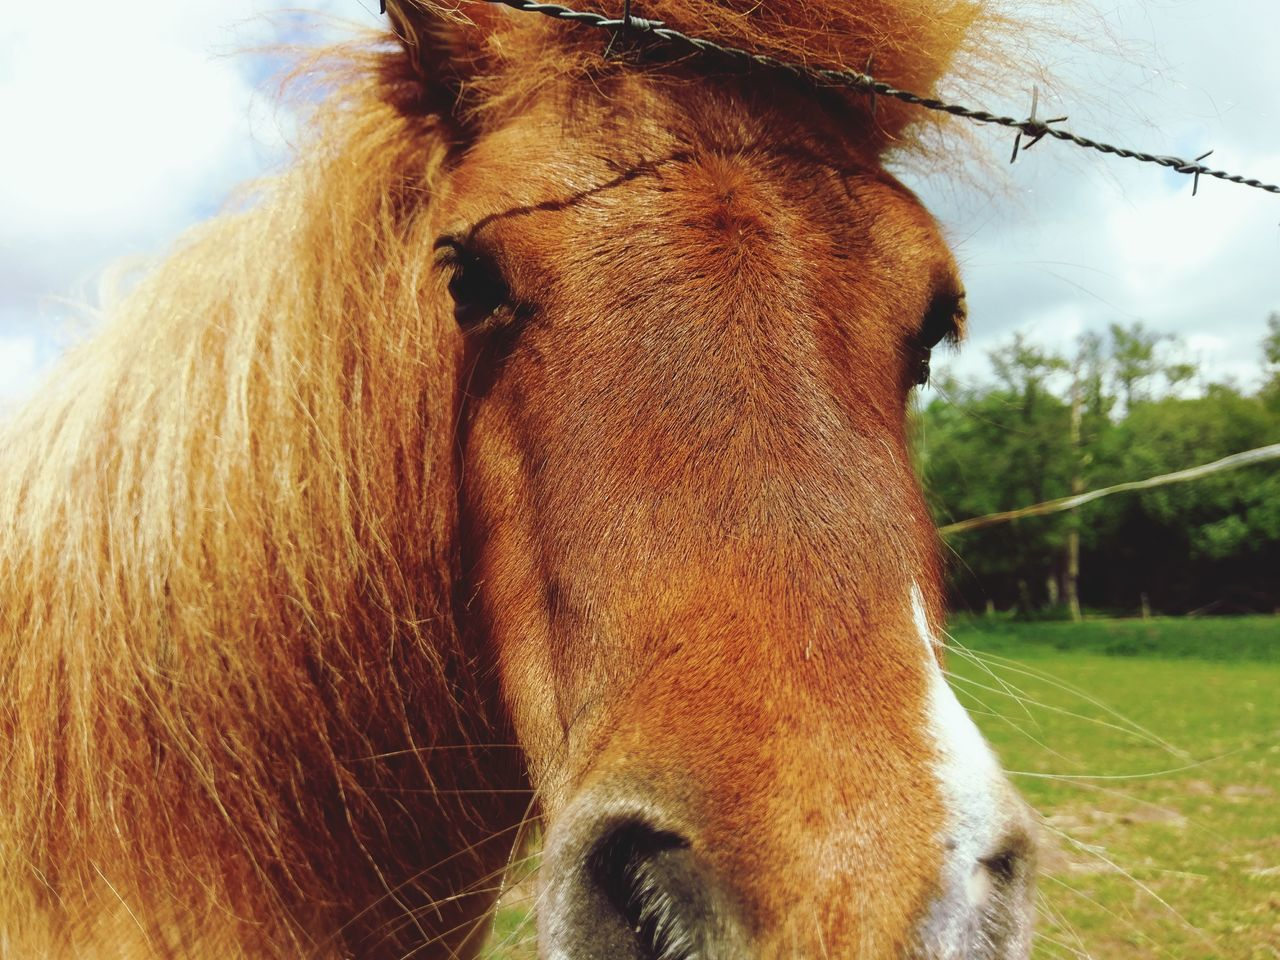 domestic animals, horse, one animal, animal themes, mammal, livestock, brown, herbivorous, animal head, day, close-up, focus on foreground, outdoors, no people, nature